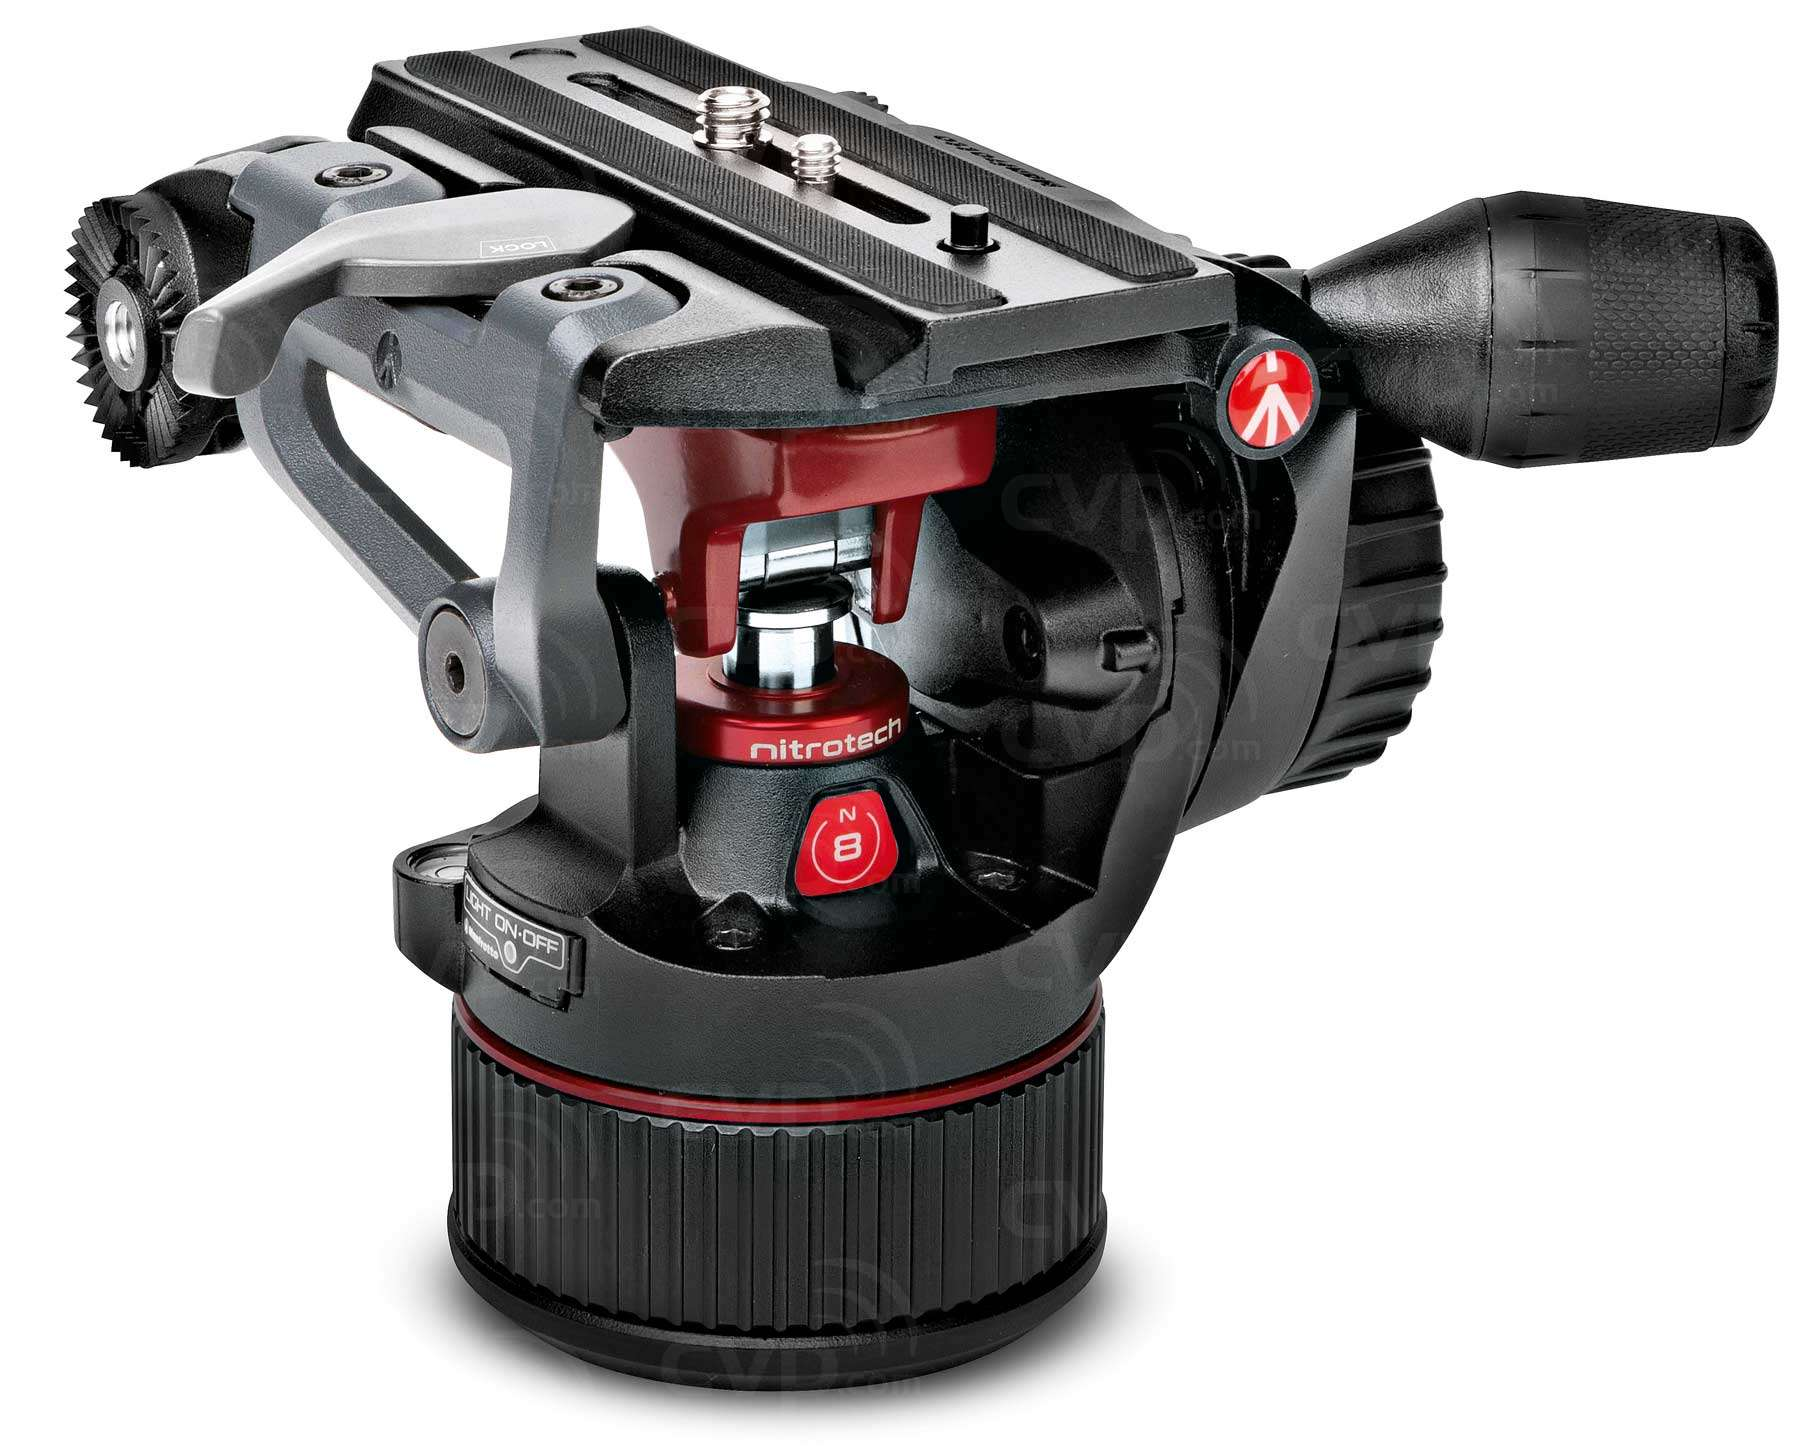 Manfrotto MVKN8CTALL (MVK-N8CTALL) Nitrotech N8 and 536 MPRO Carbon Fibre